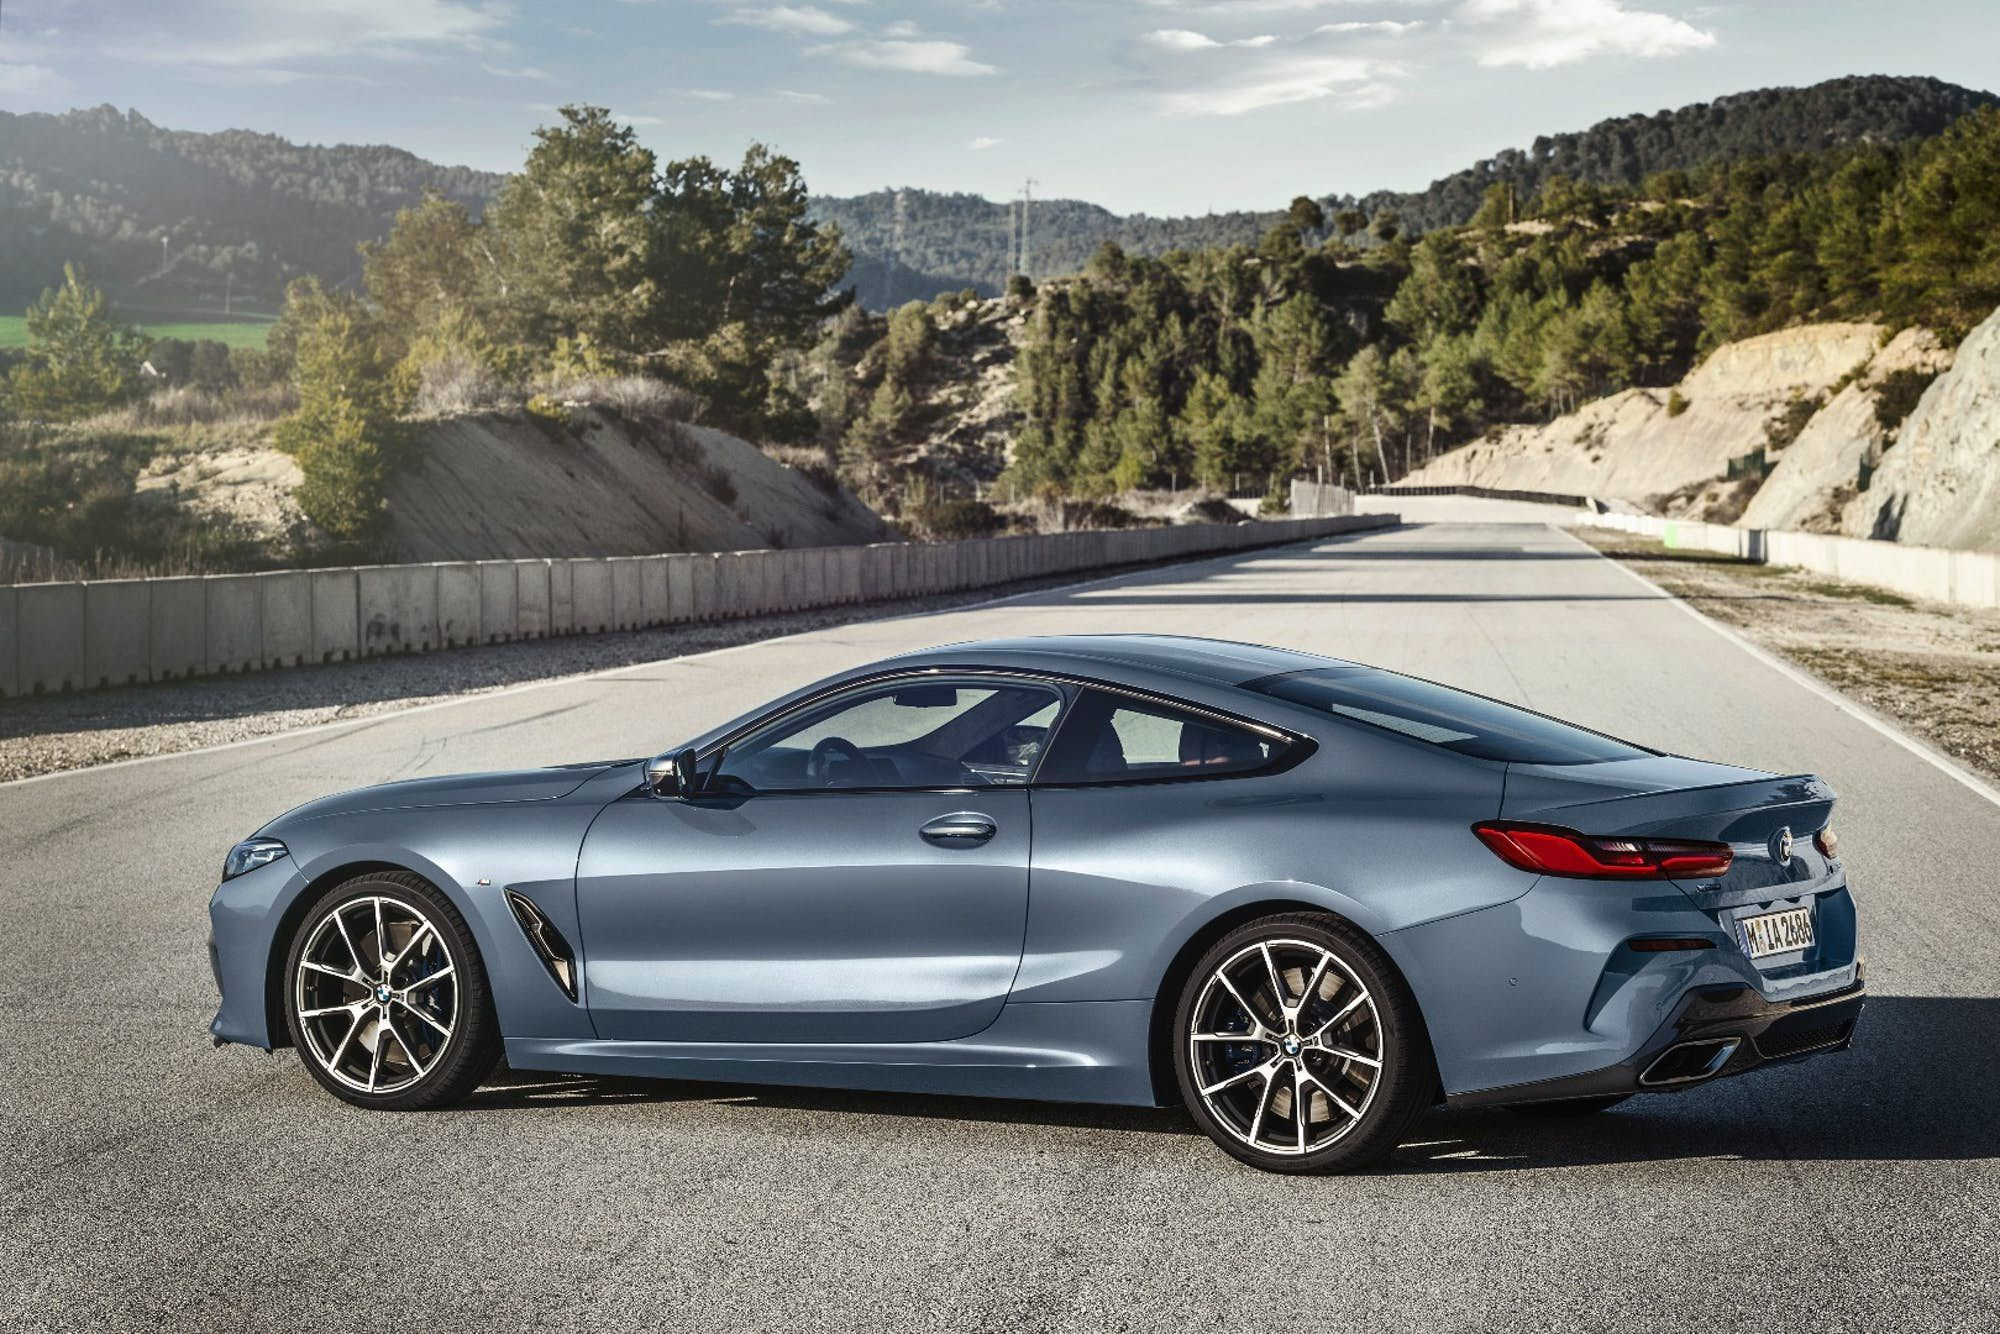 All New 2019 Bmw 8 Series Coupe Introduced Bmw Bmw Car Models New Bmw